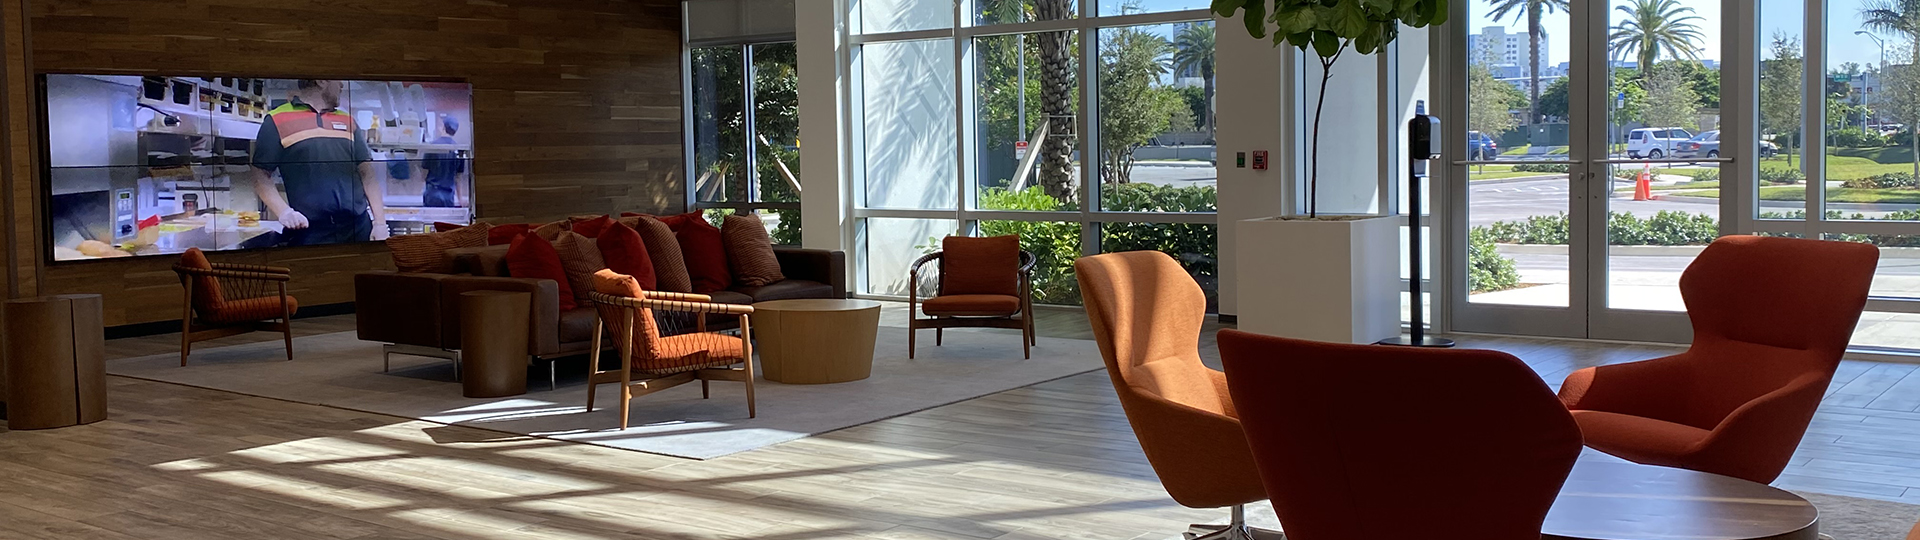 Lobby of Miami office - lounge area, front desk